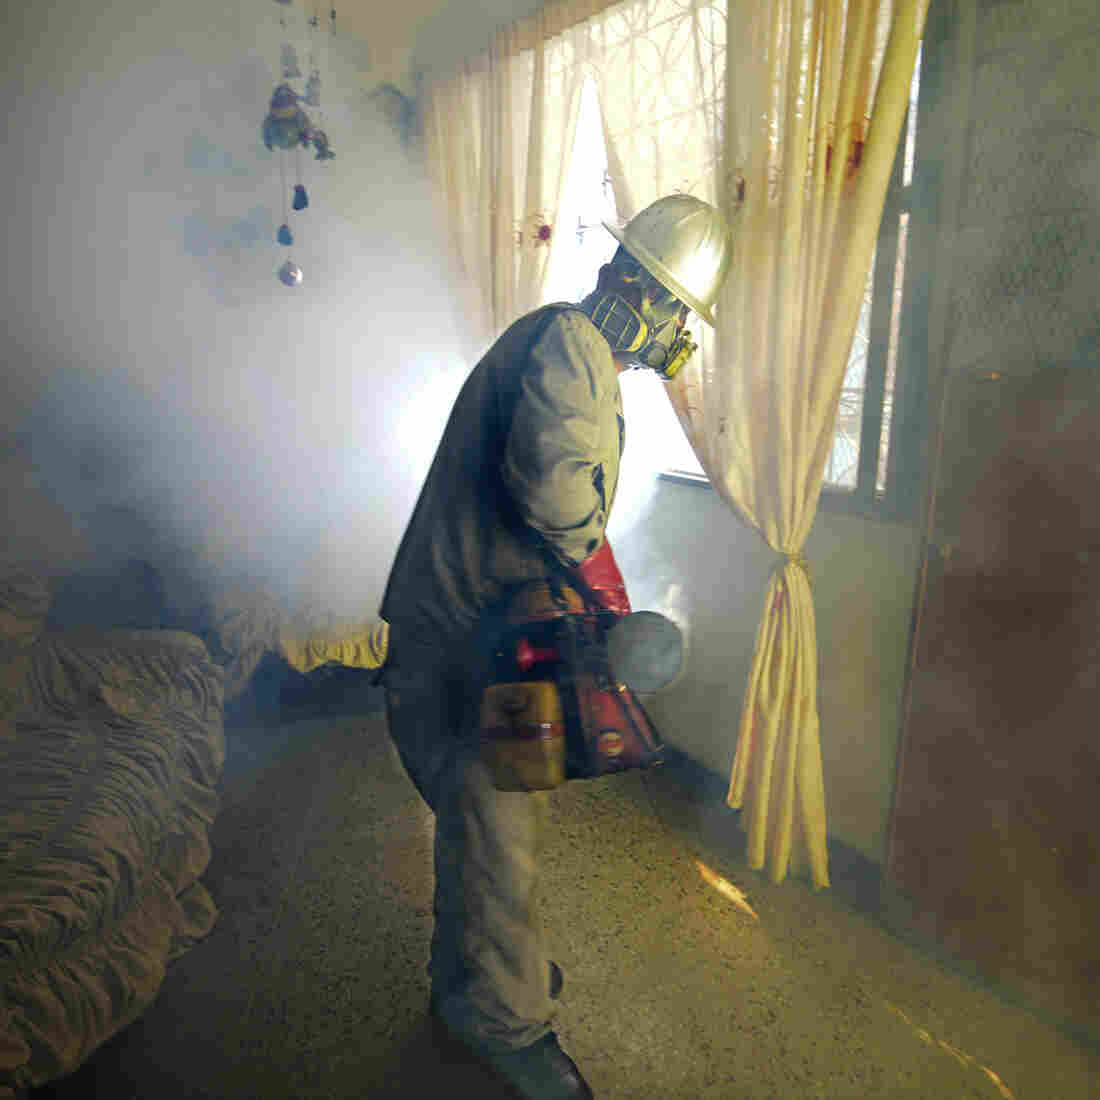 How Many Zika Cases Are There In Venezuela: 4,000 Or 400,000?